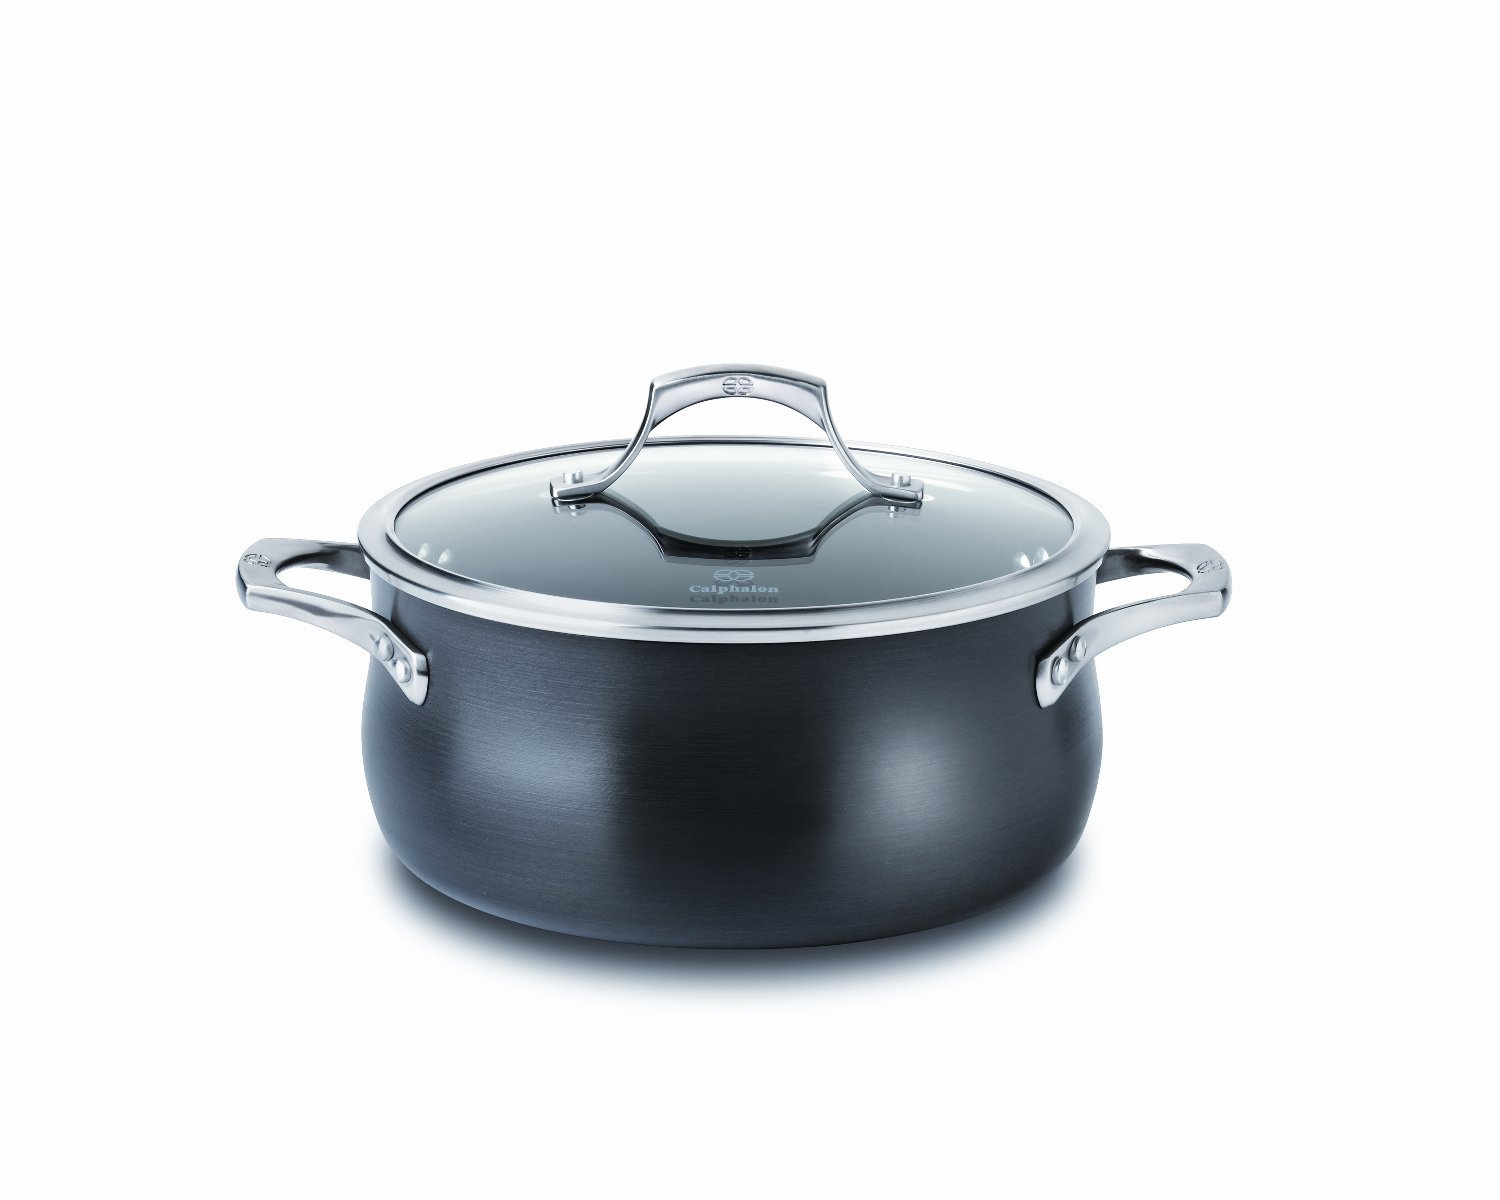 Calphalon Unison Nonstick, Sear Surface, Dutch Oven, 5-quart